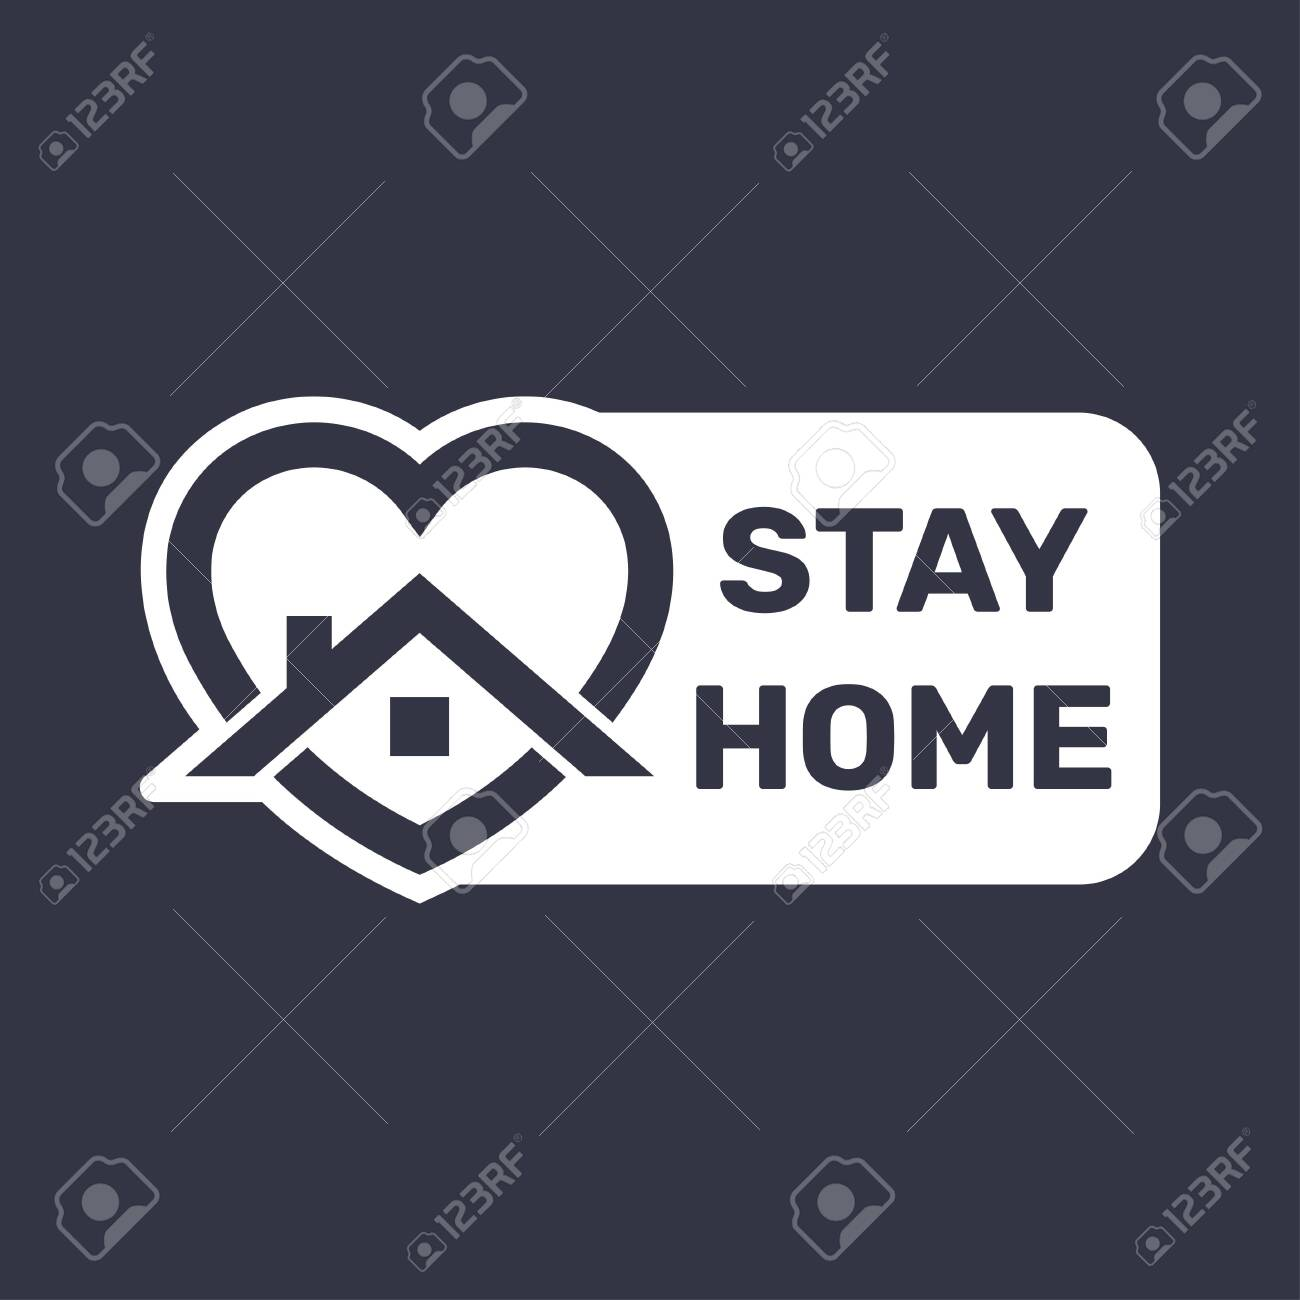 Stay at home. COVID 19 or coronavirus protection campaign logo. - 147130317